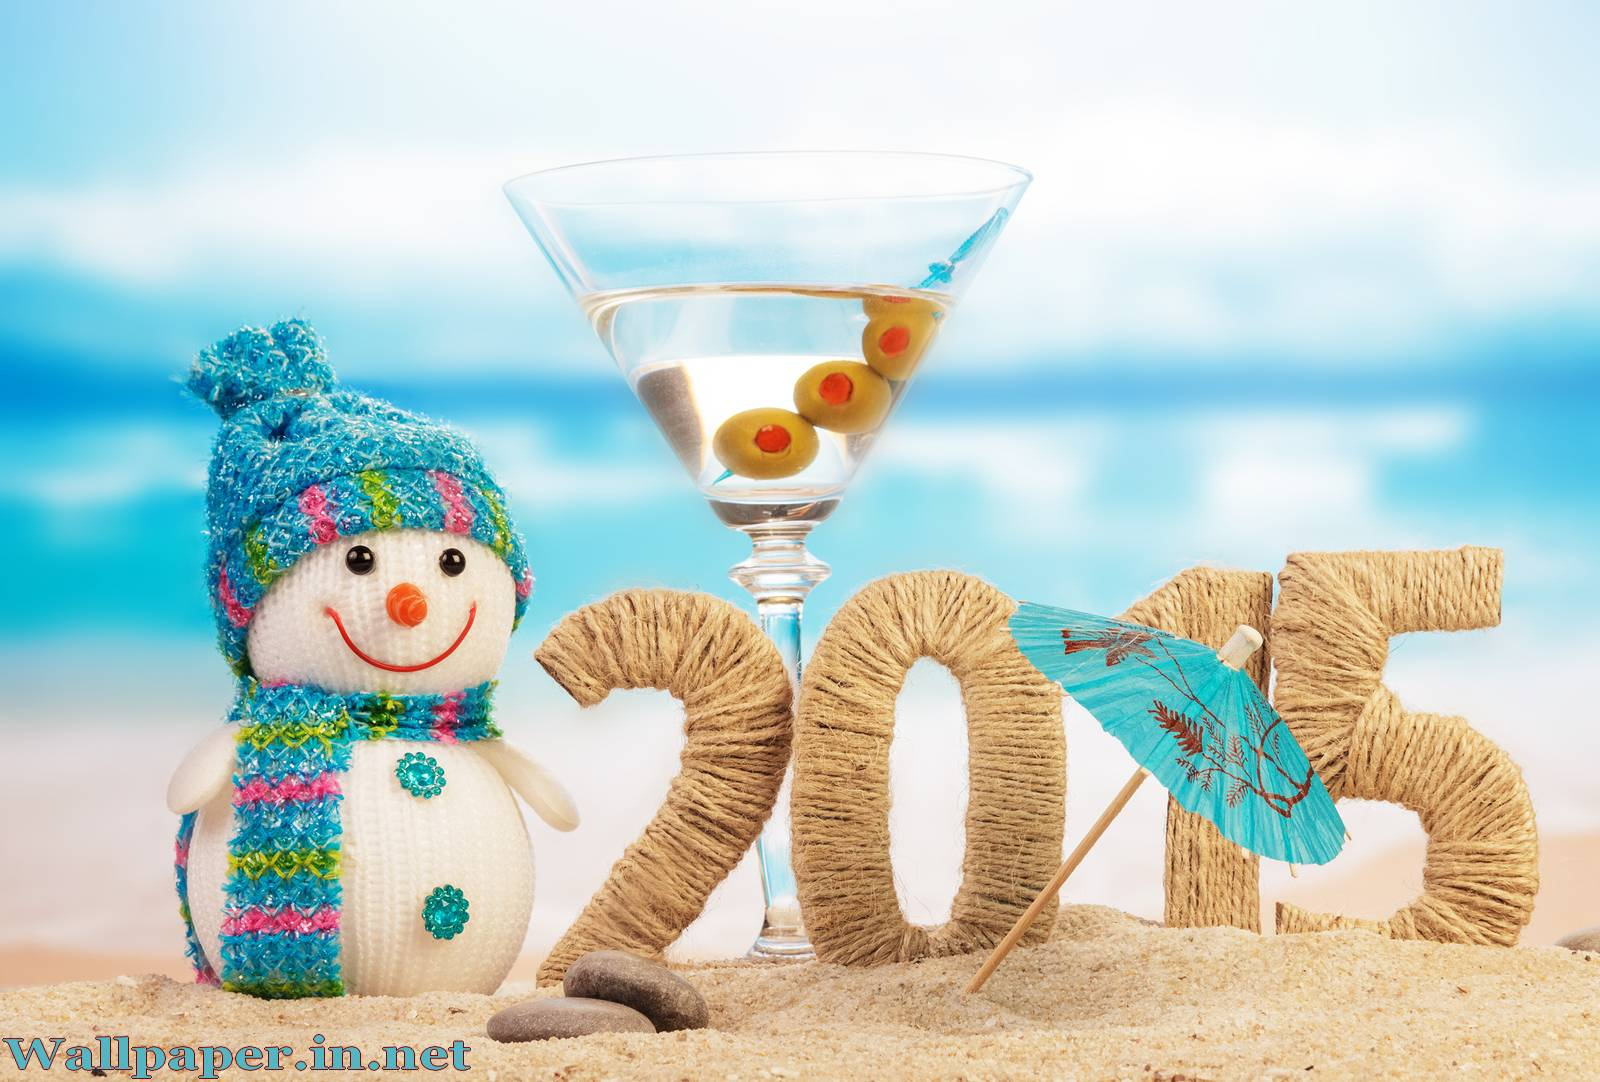 2015 Happy New Year Images Download HD Background Wallpapers 1600x1082